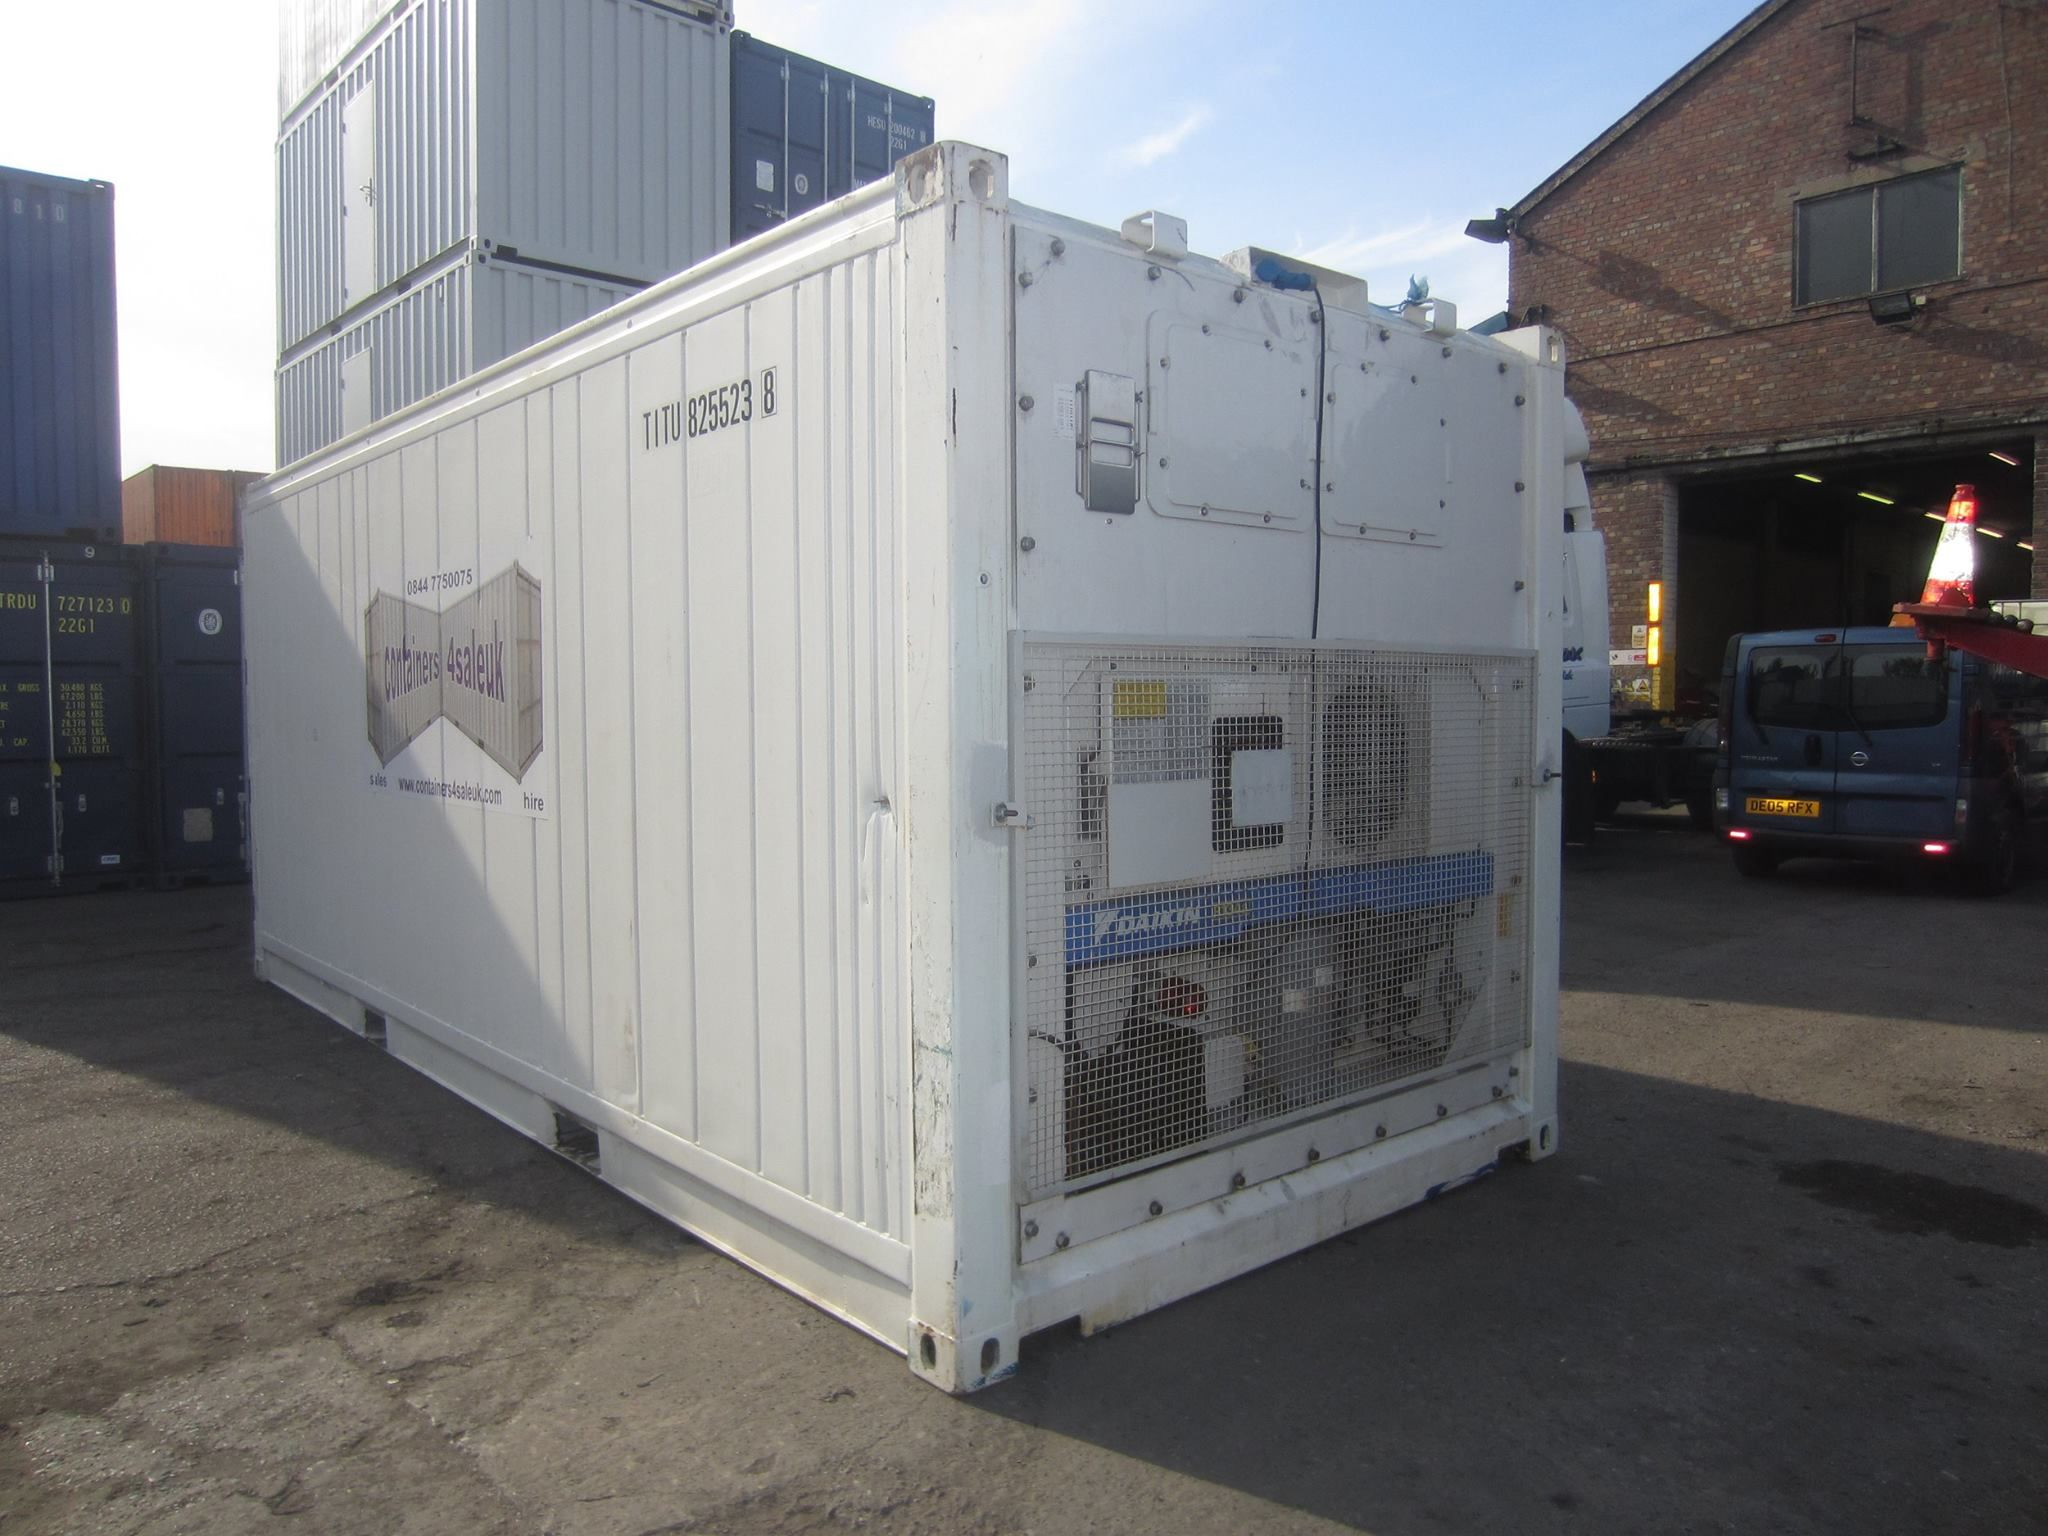 New 20ft Reefer (With images) Home appliances, Reefer